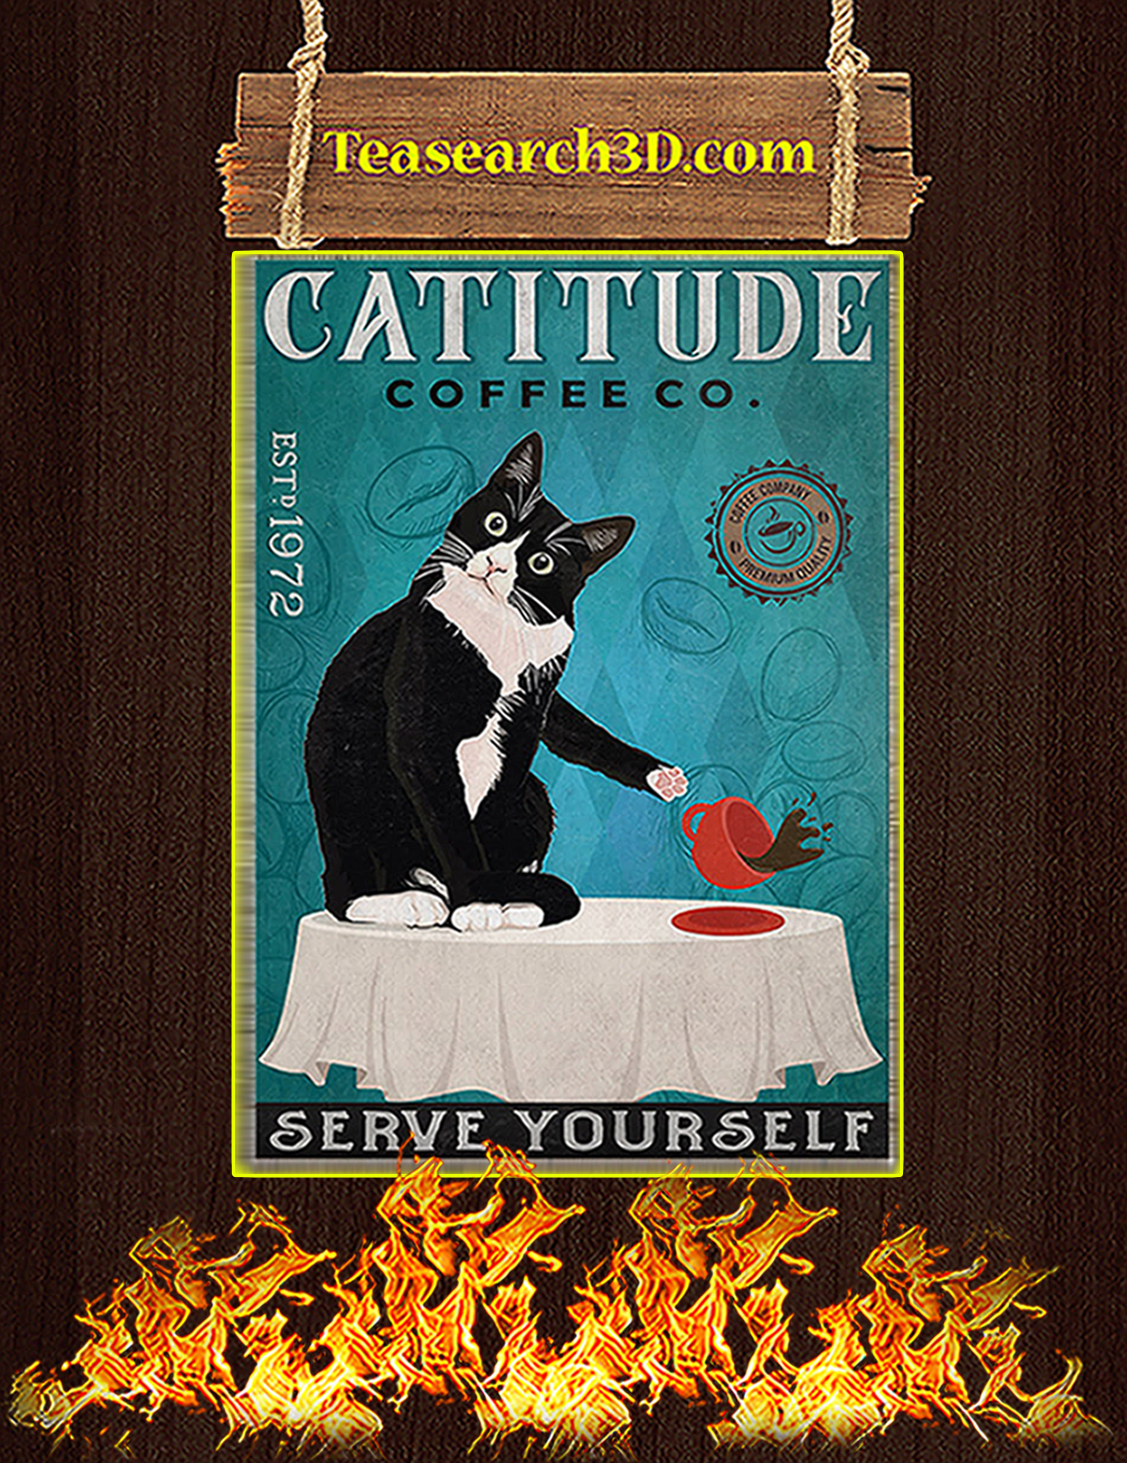 Catitude coffee co serve yourself poster A3